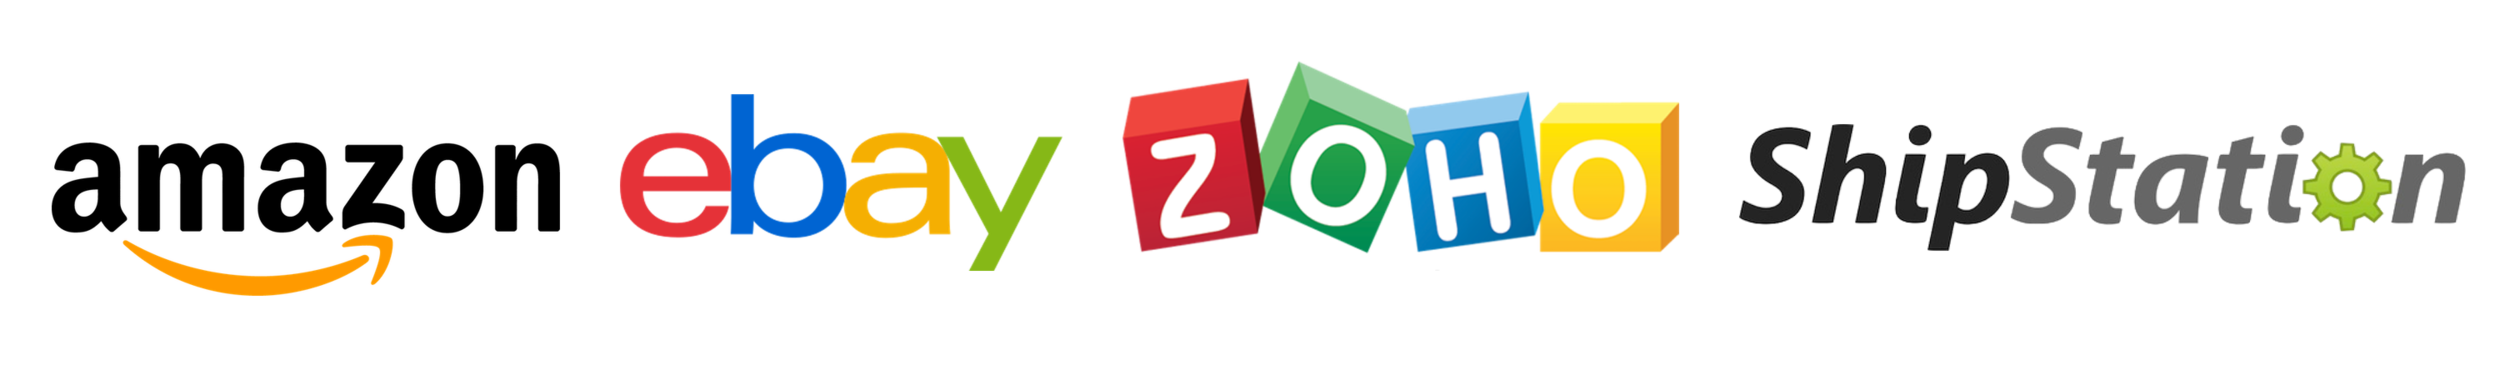 OMS supports integration with Amazon, eBay, Zoho and Shipstation APIs.